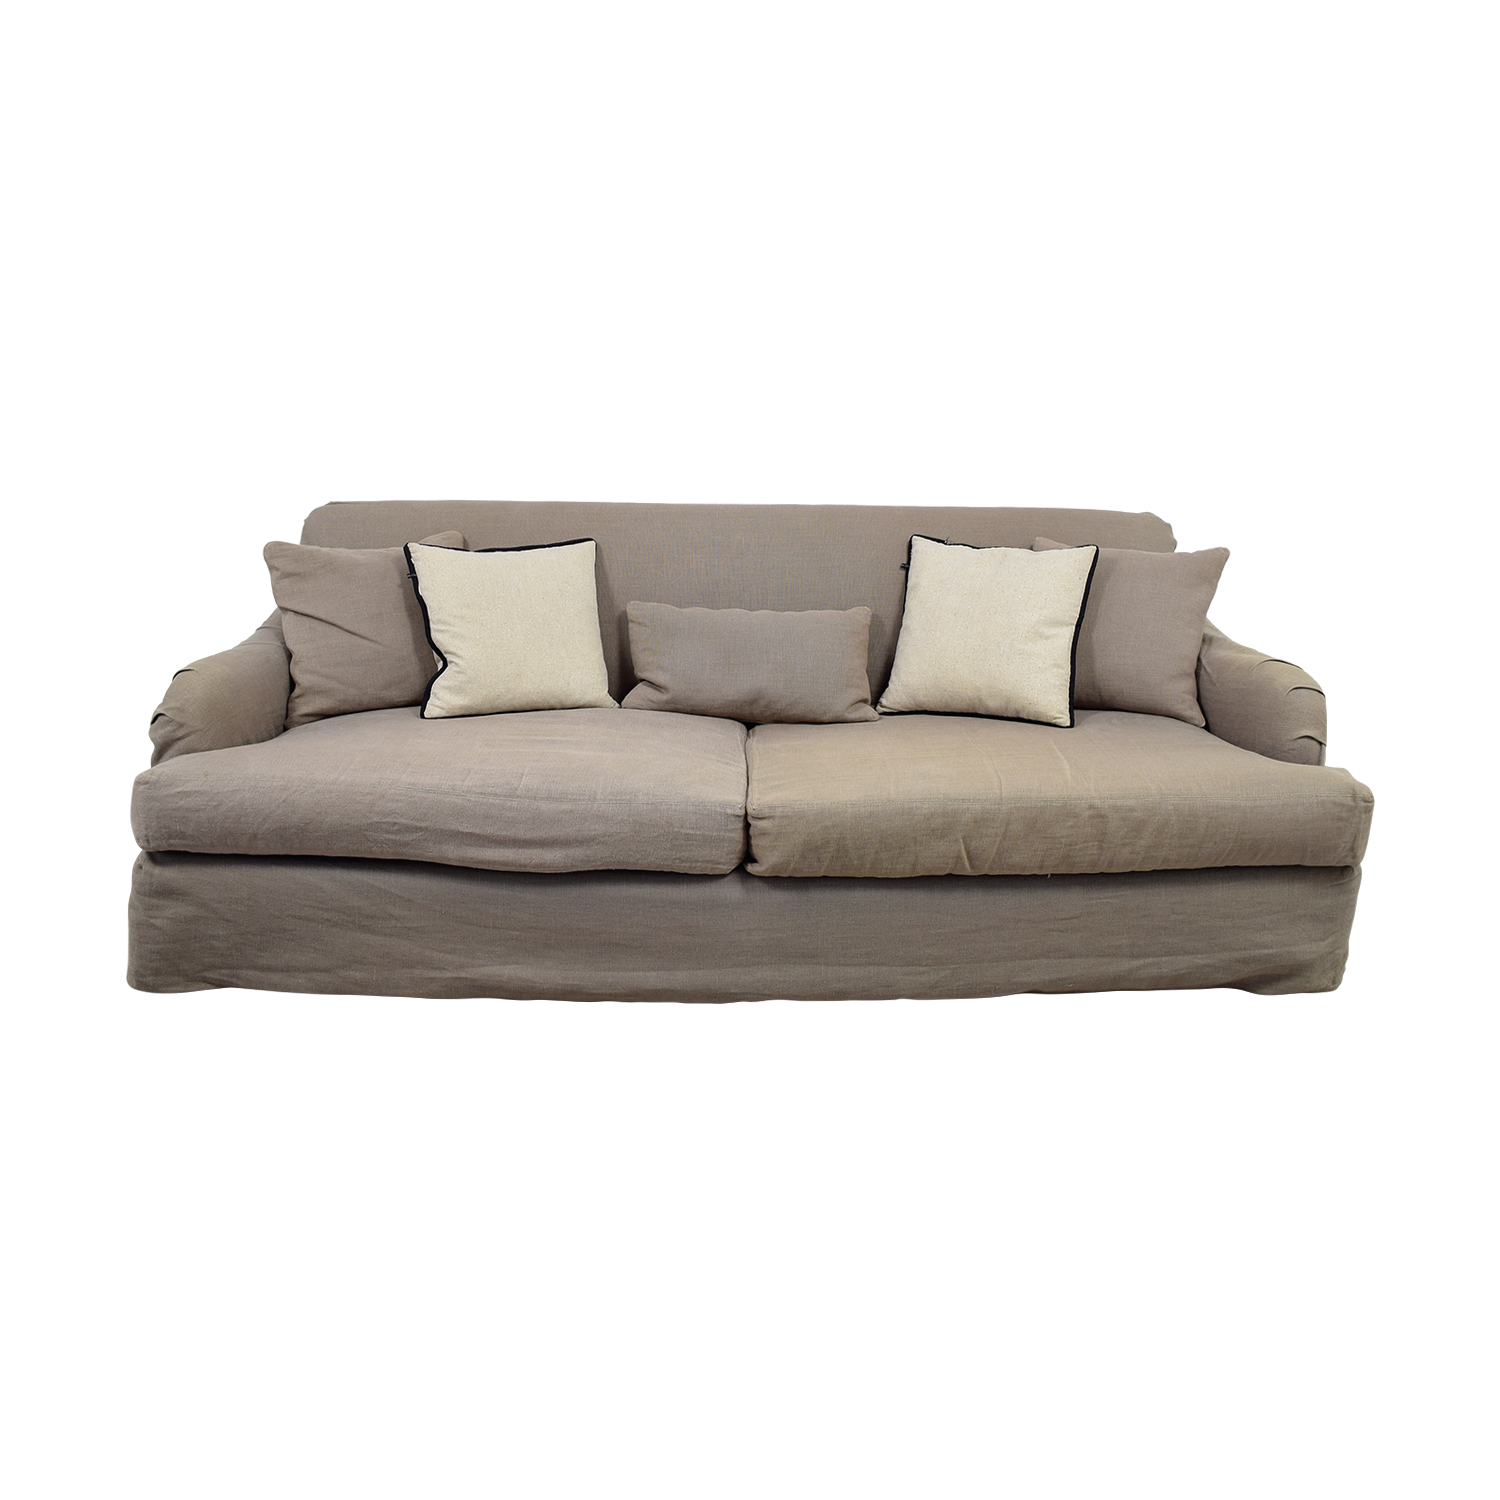 promo code b05d9 d12fe 90% OFF - Cisco Brothers Cisco Brothers Grey Linen Down Feather Filled Sofa  / Sofas